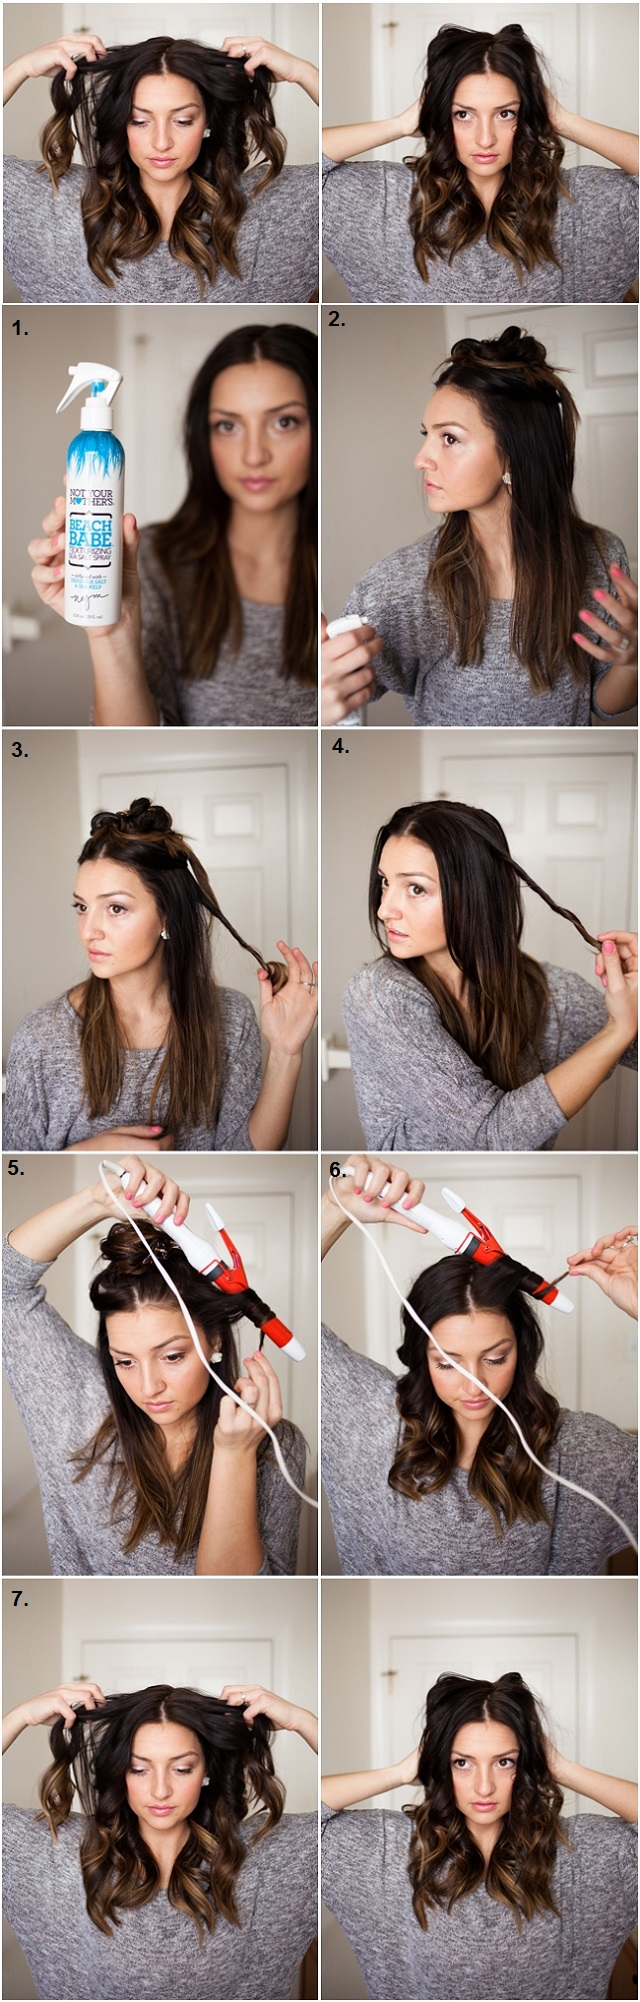 curling-hair